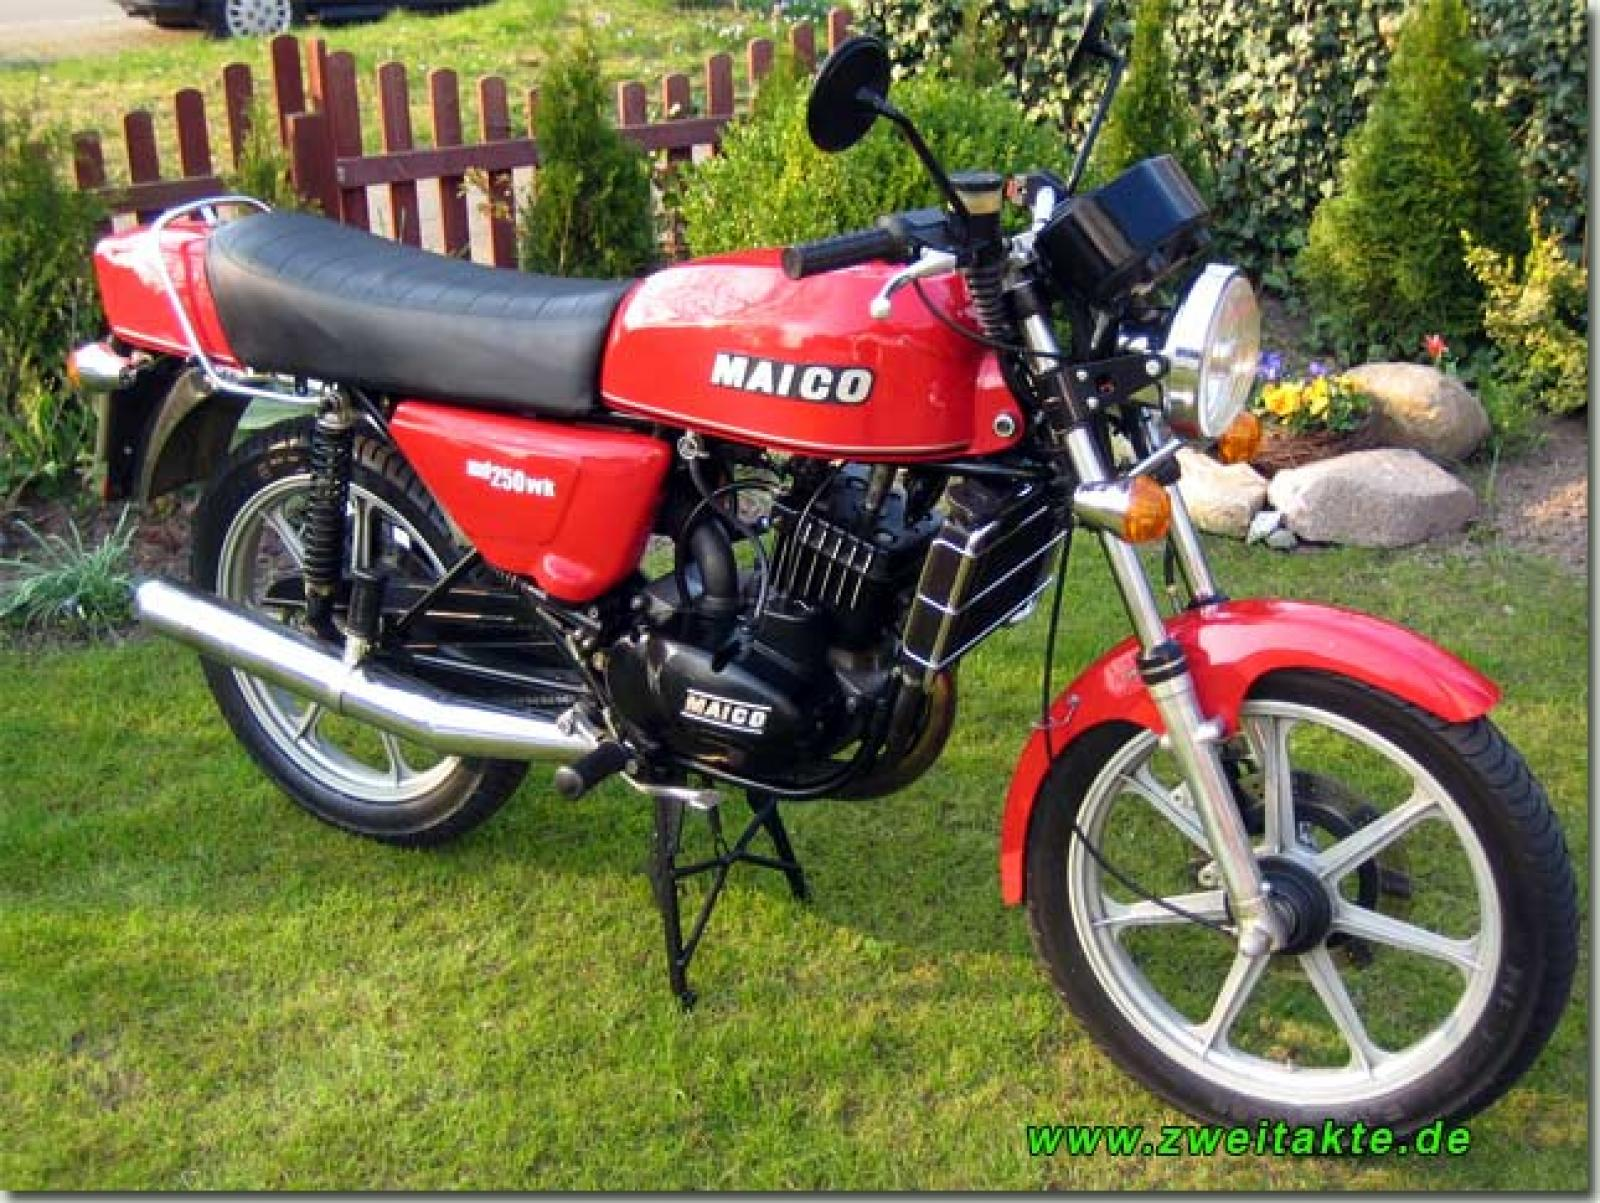 Maico MD 250 WK 1979 images #103555